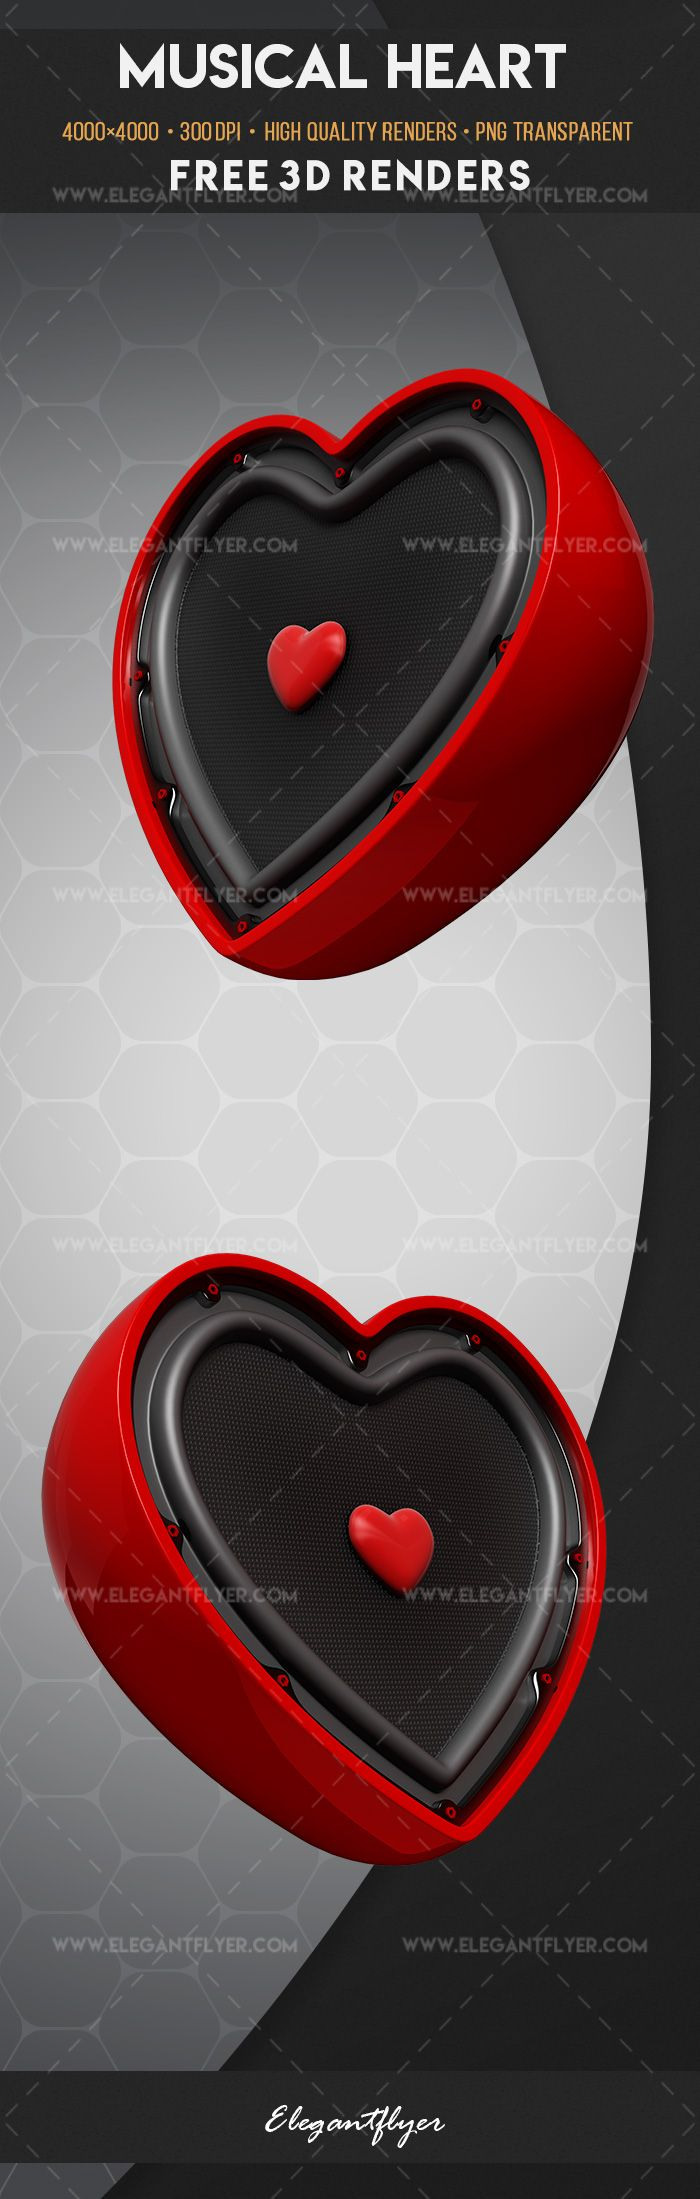 Musical Heart – Free 3d Render Templates